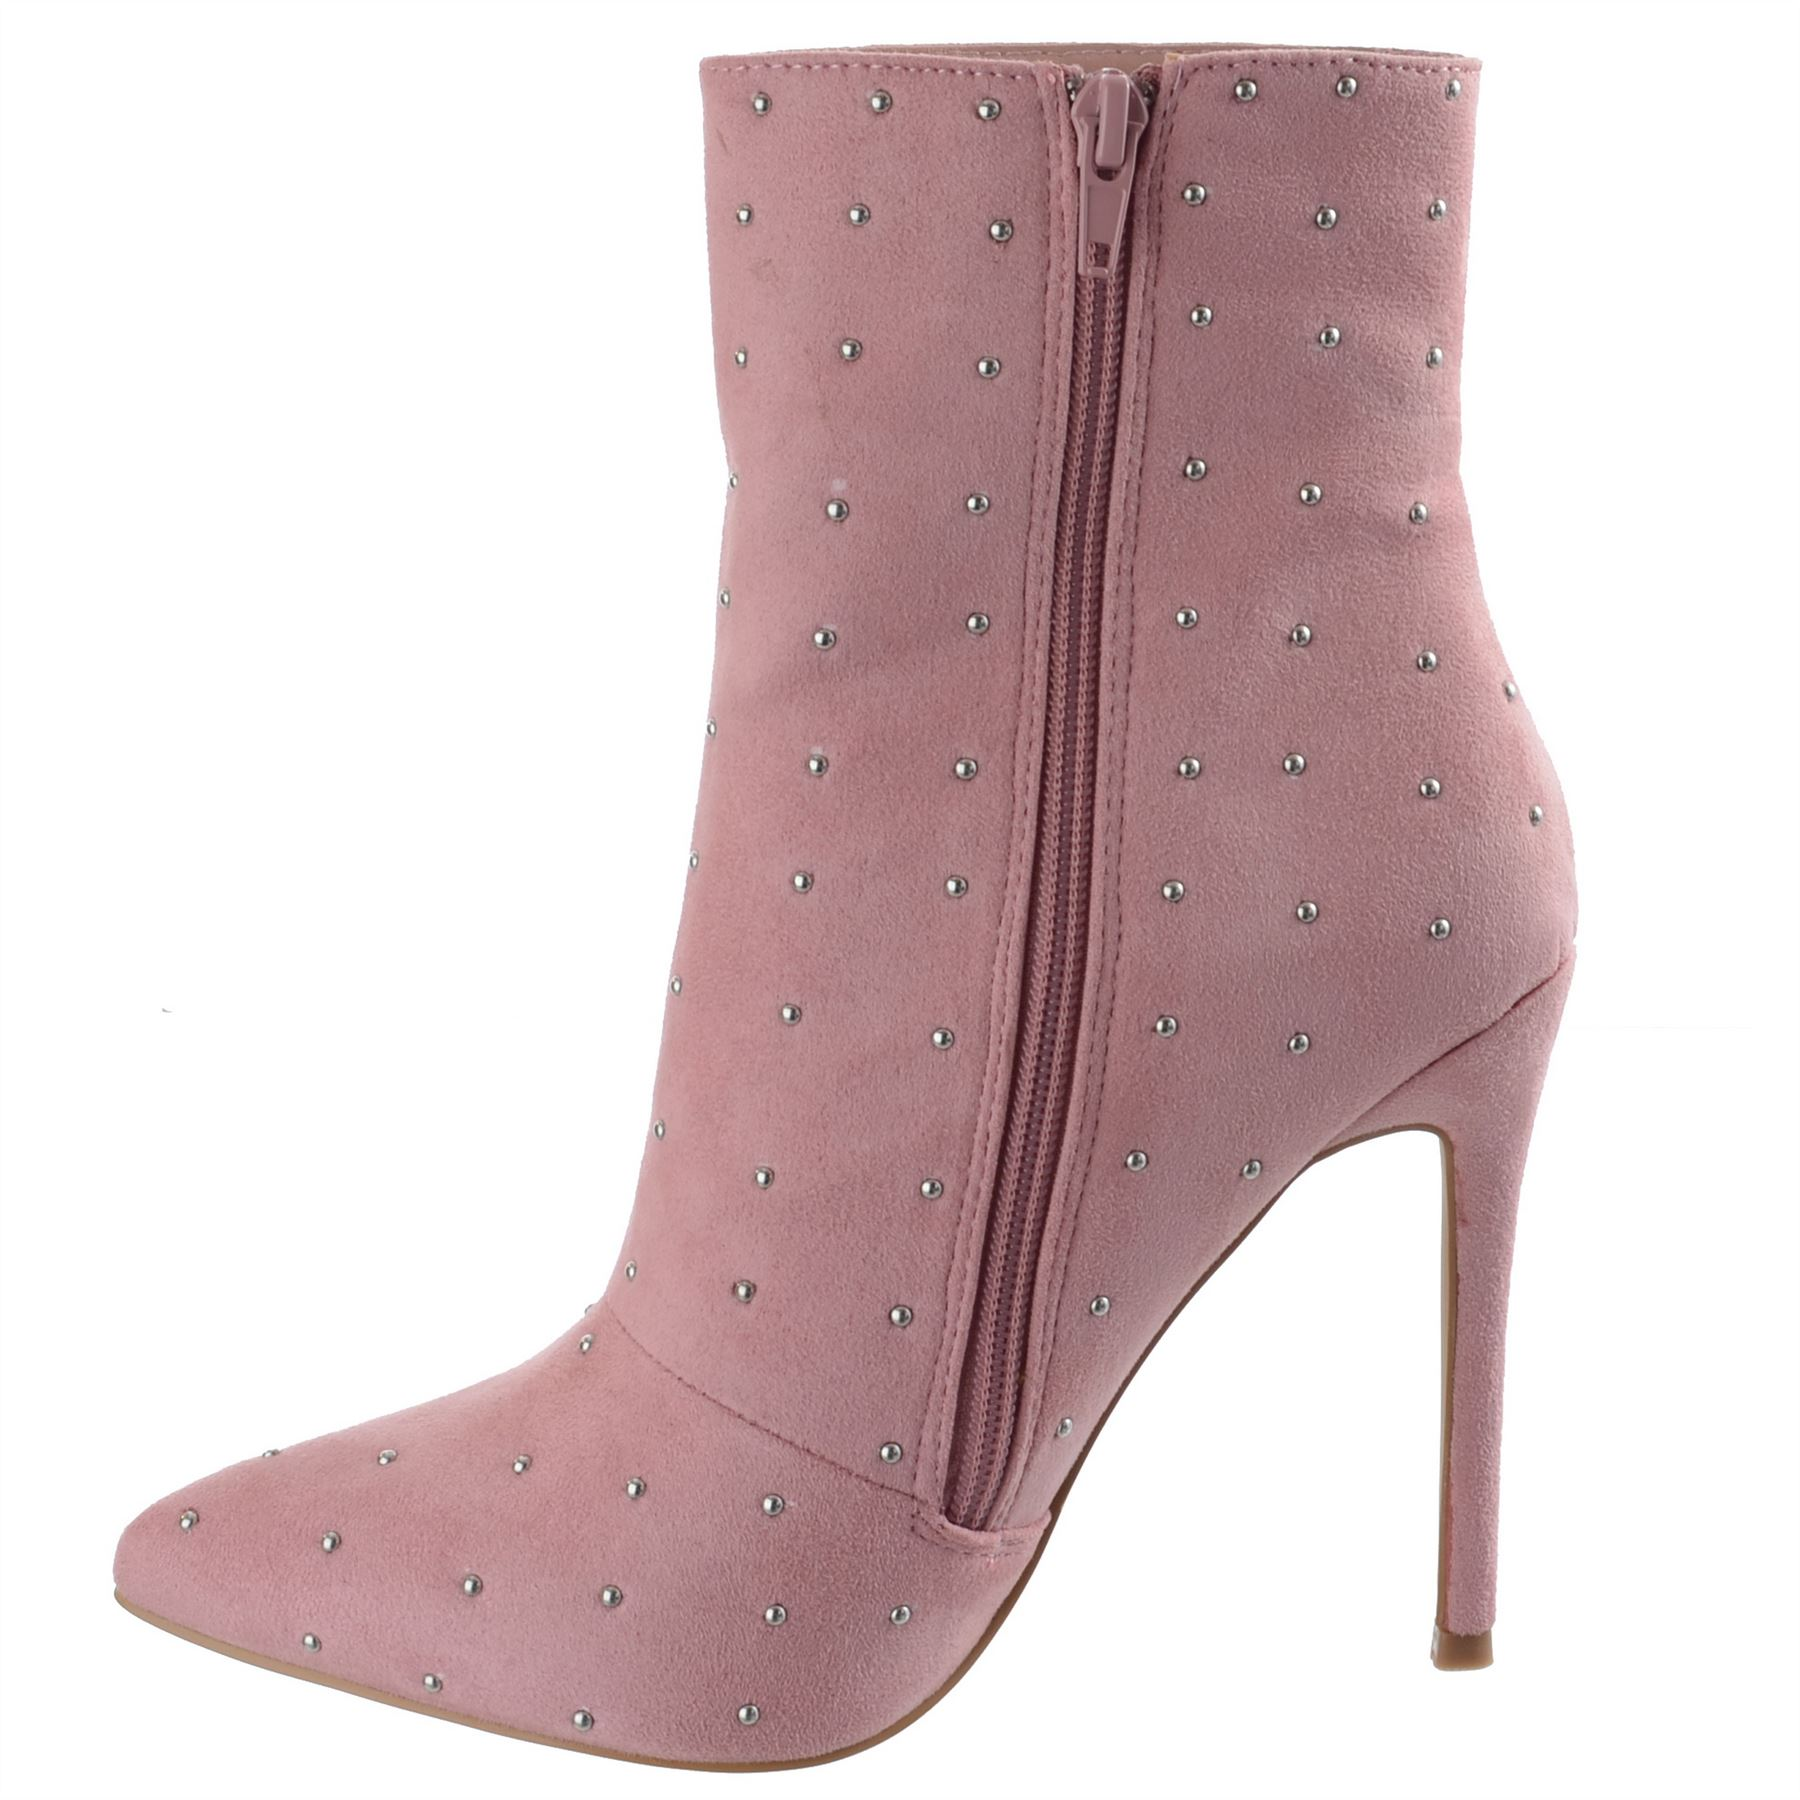 Ladies-Womens-High-Stiletto-Heel-Pointy-Toe-Zip-Up-Ankle-Boots-Shoes-Size-3-8 miniatuur 10